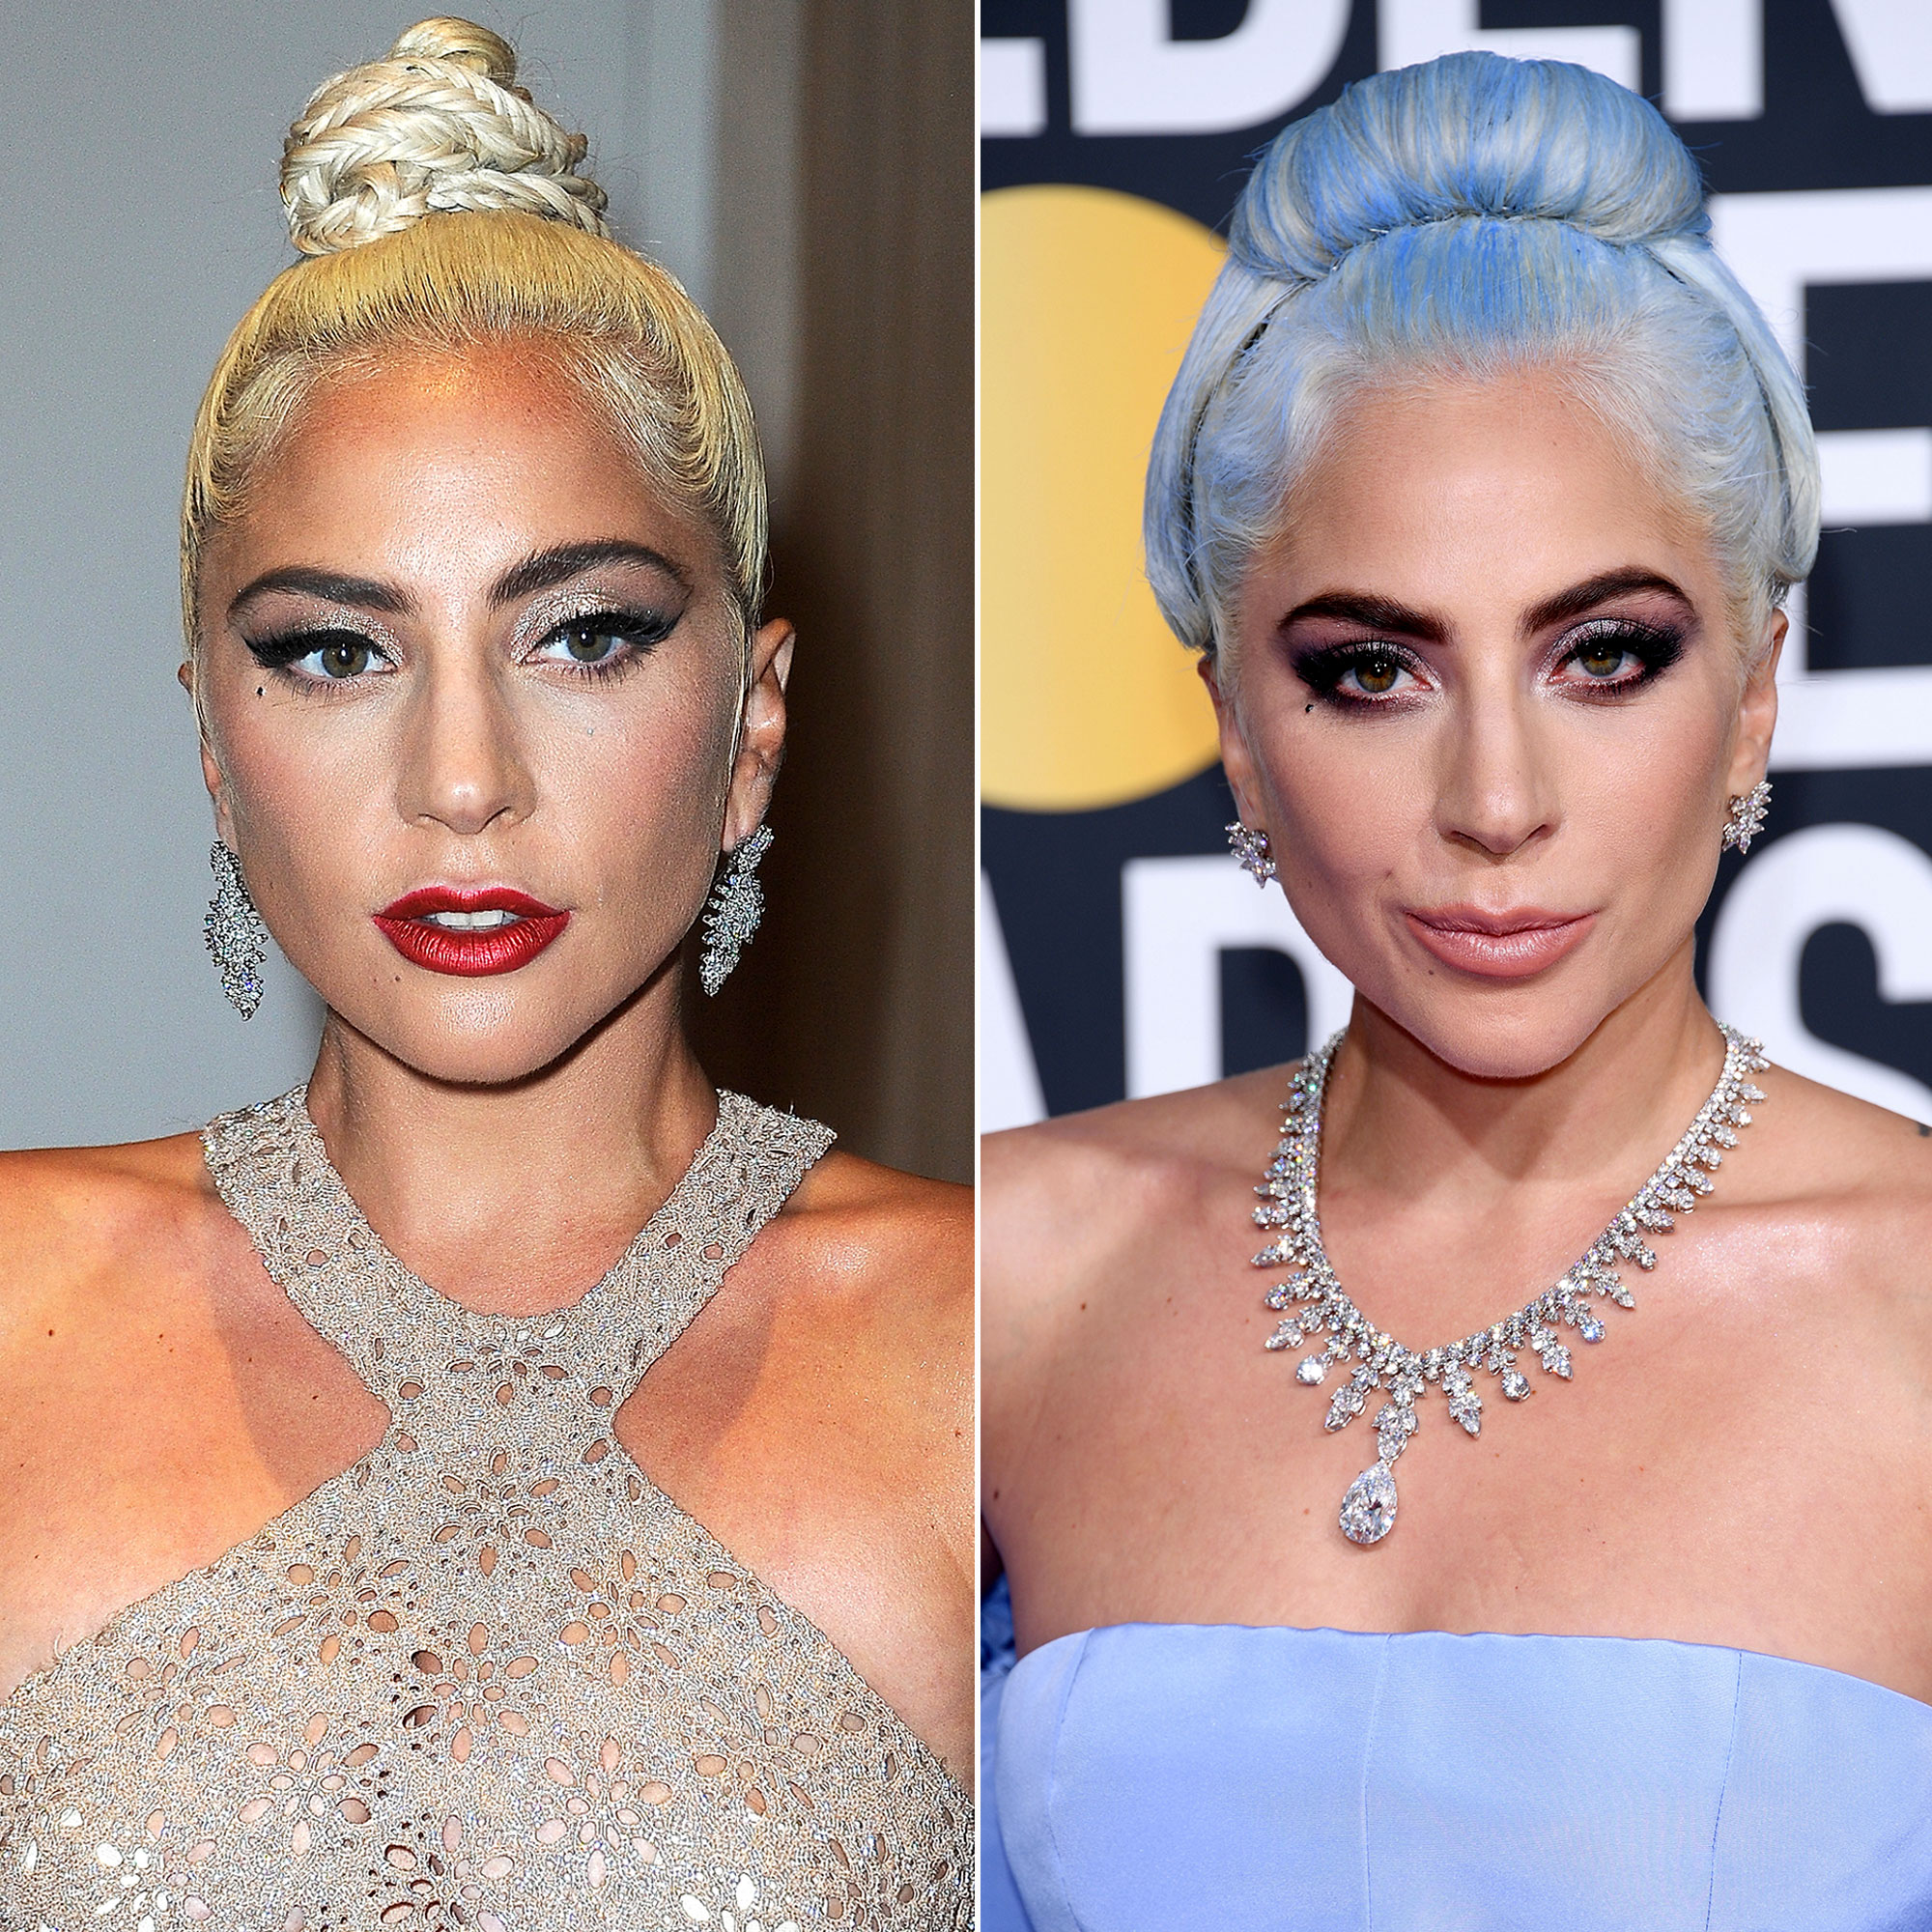 Celebrity Hair Transformations of 2019 - The Golden Globes winner arrived at the awards show on Sunday, January 6, with blue hair to match her periwinkle Maison Valentino gown, and Us exclusively learned that the A Star Is Born actress' mane man Frederic Aspiras used Joico's Color Intensity to dye her platinum strands.